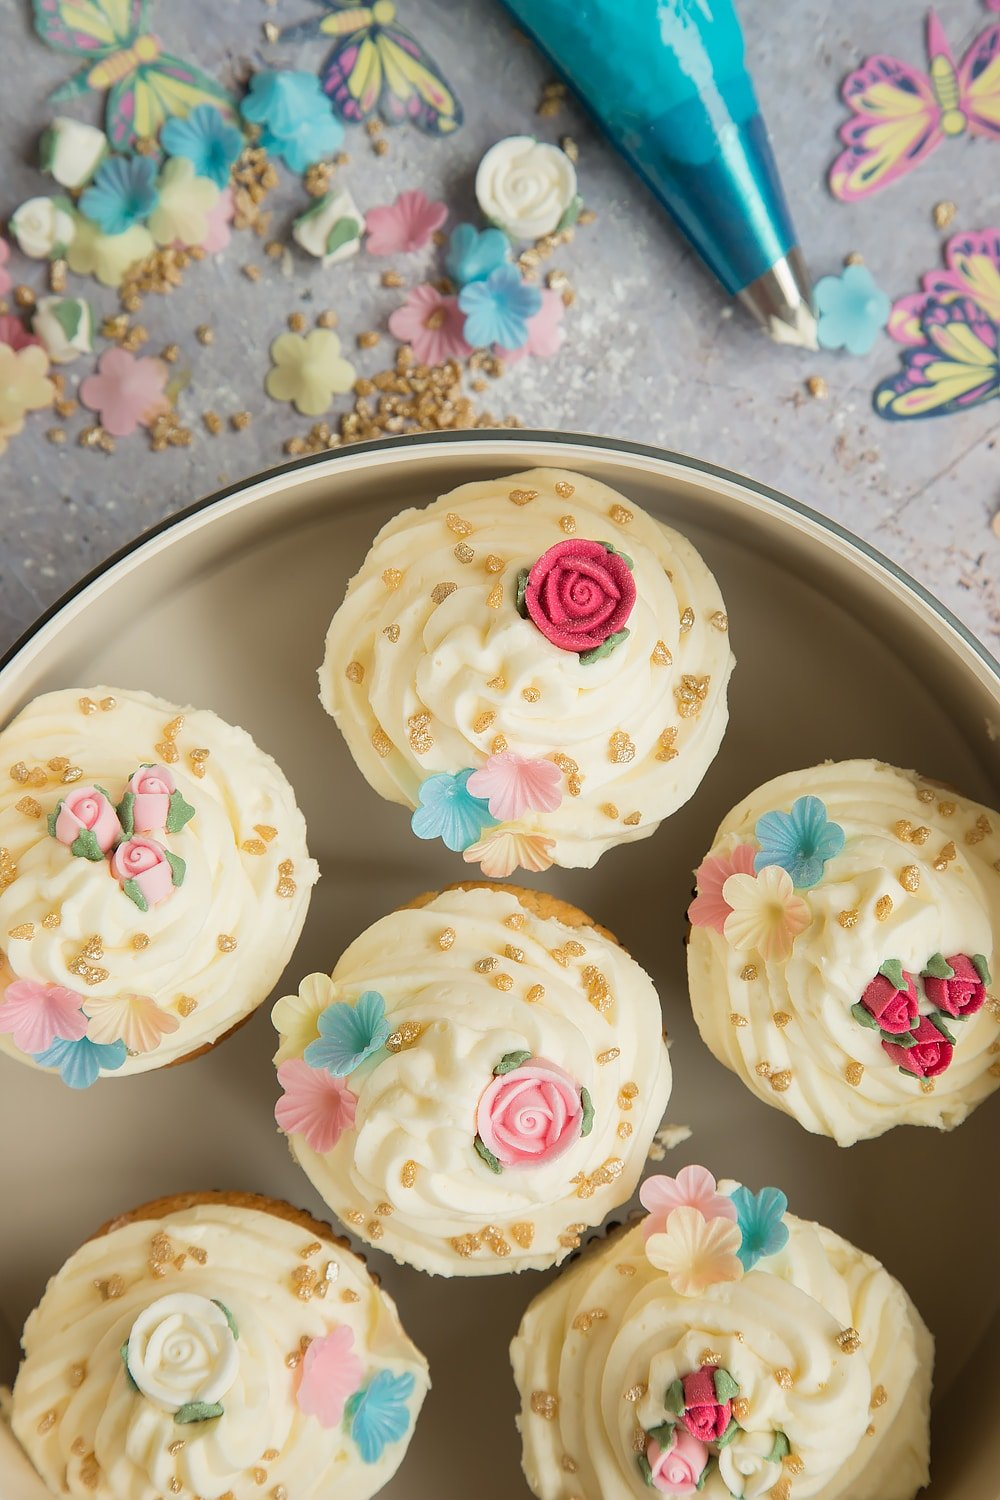 Lemon cupcakes with buttercream frosting, surrounded by decorations